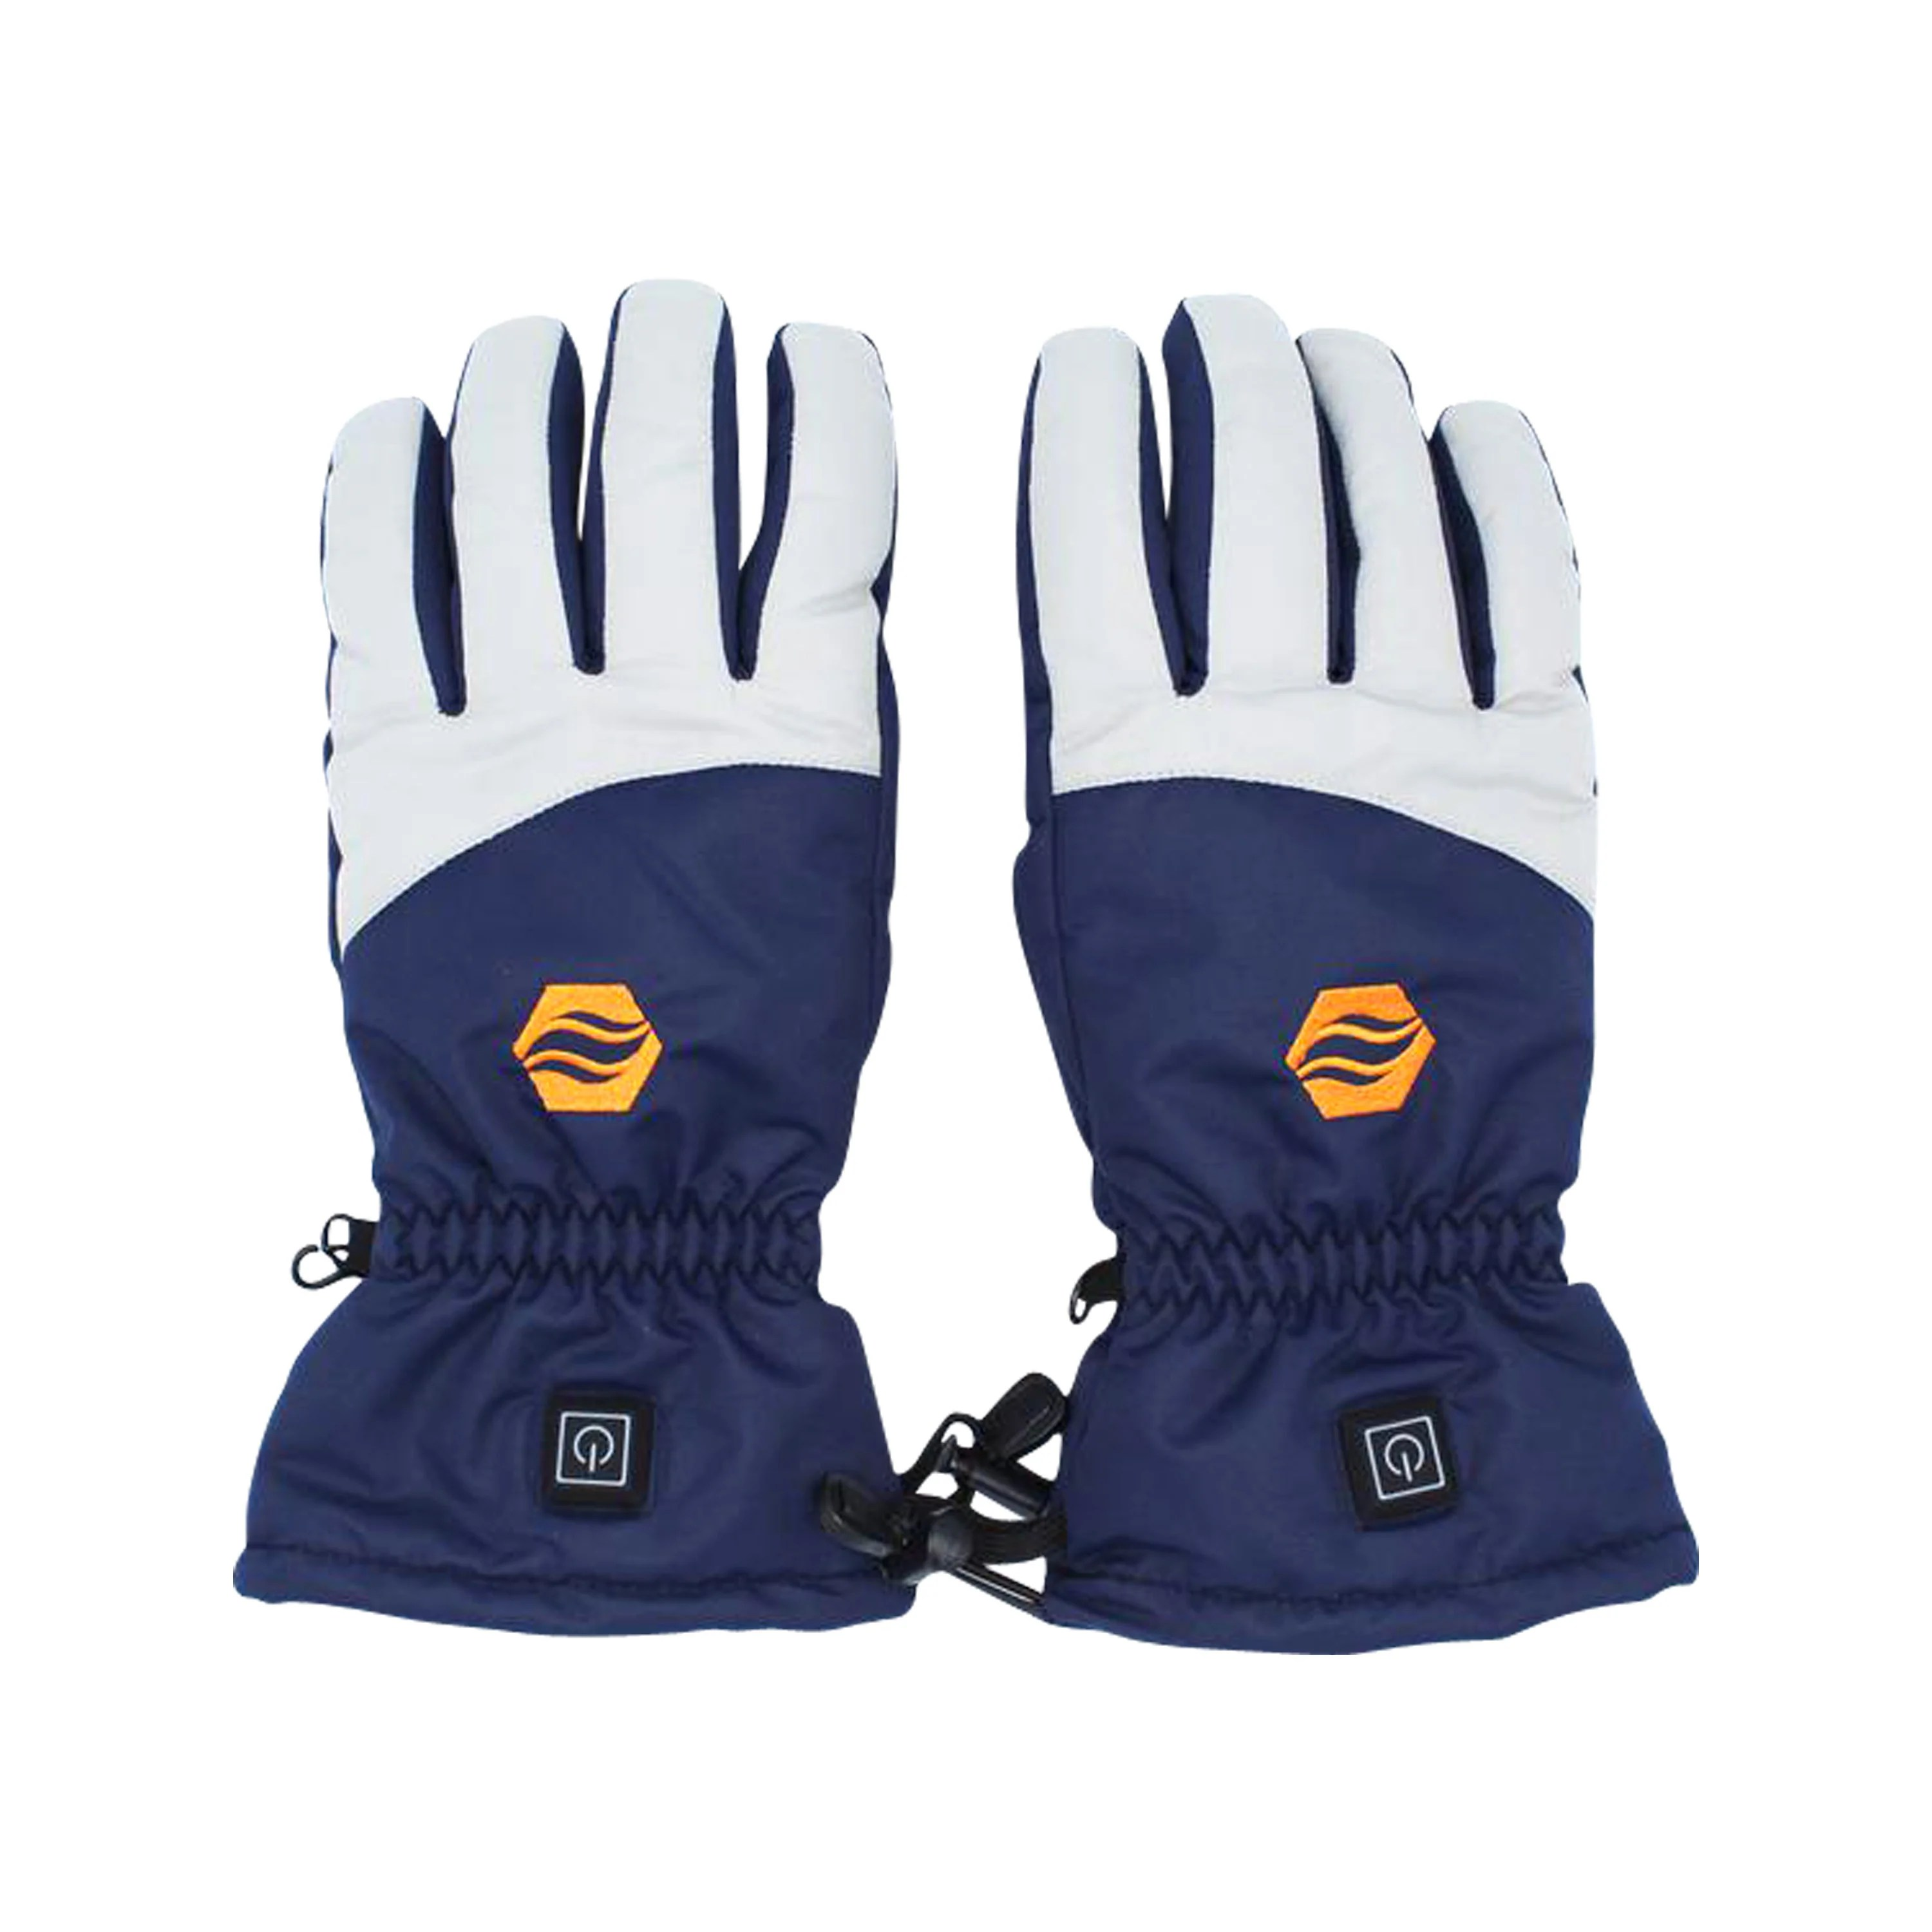 hight resolution of rechargeable heated gloves 3 level heated winter gloves for men women